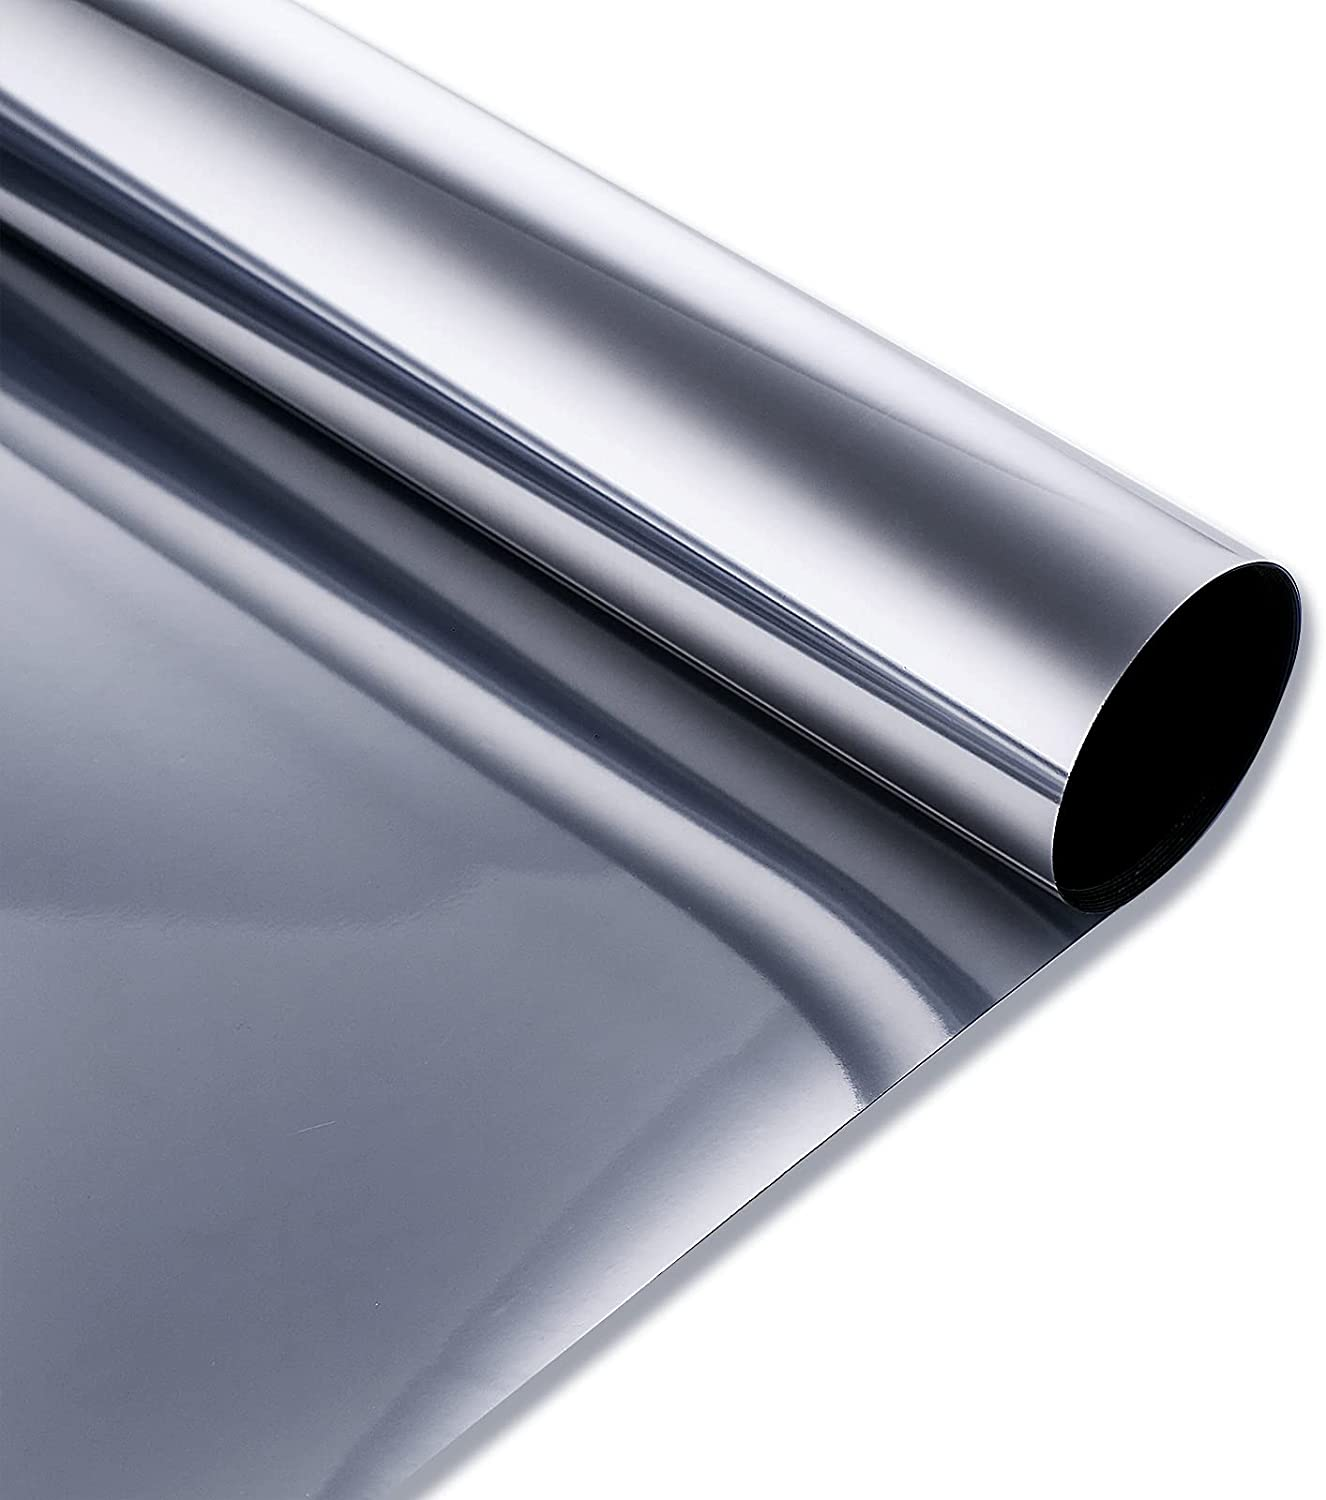 Window Tint for Home CYPSIN One Way Mirror Film Non Adhesive Static Cling Privacy Protection Window Heat Blocker 17.5 Inch x6.5 Feet,Silver